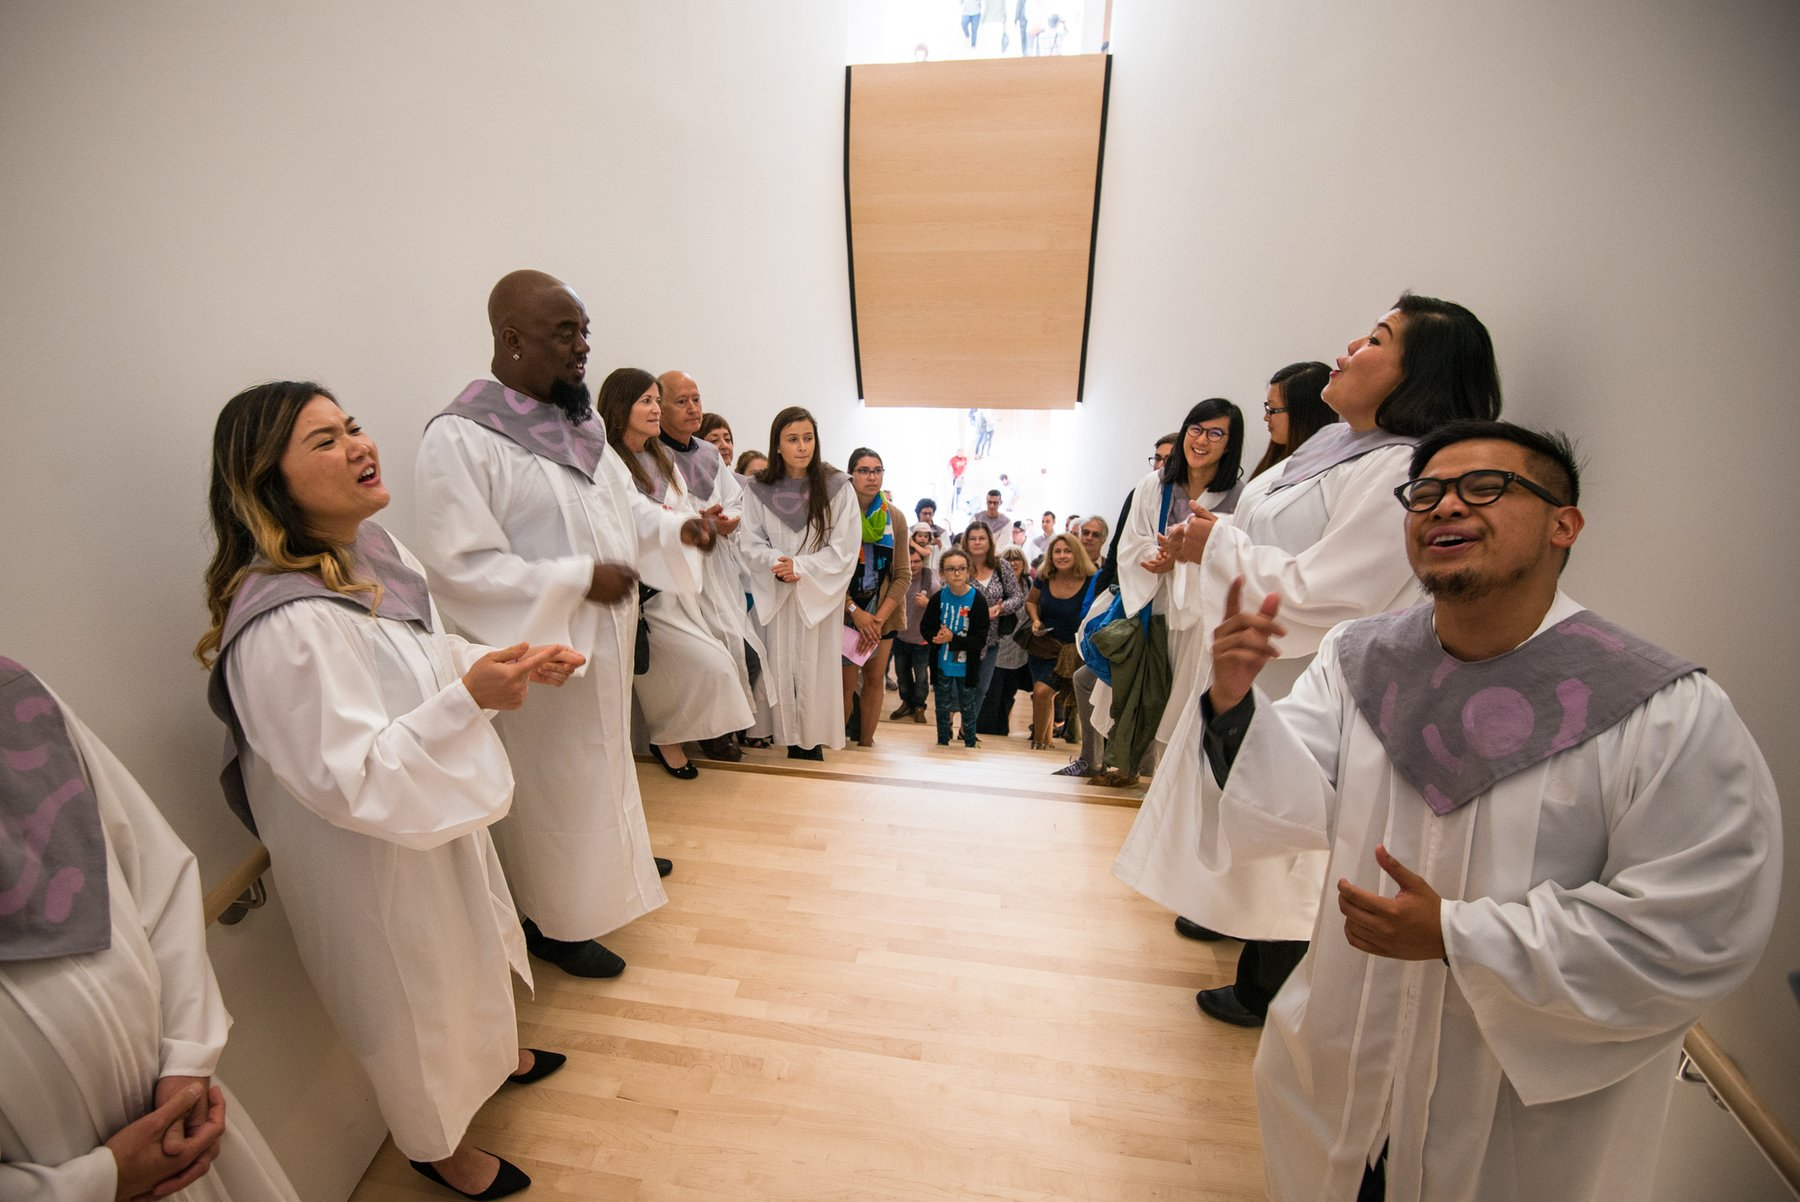 A group of people wearing white robes sing on a staircase, Paradise Choir, Kallmyer, Soundtracks